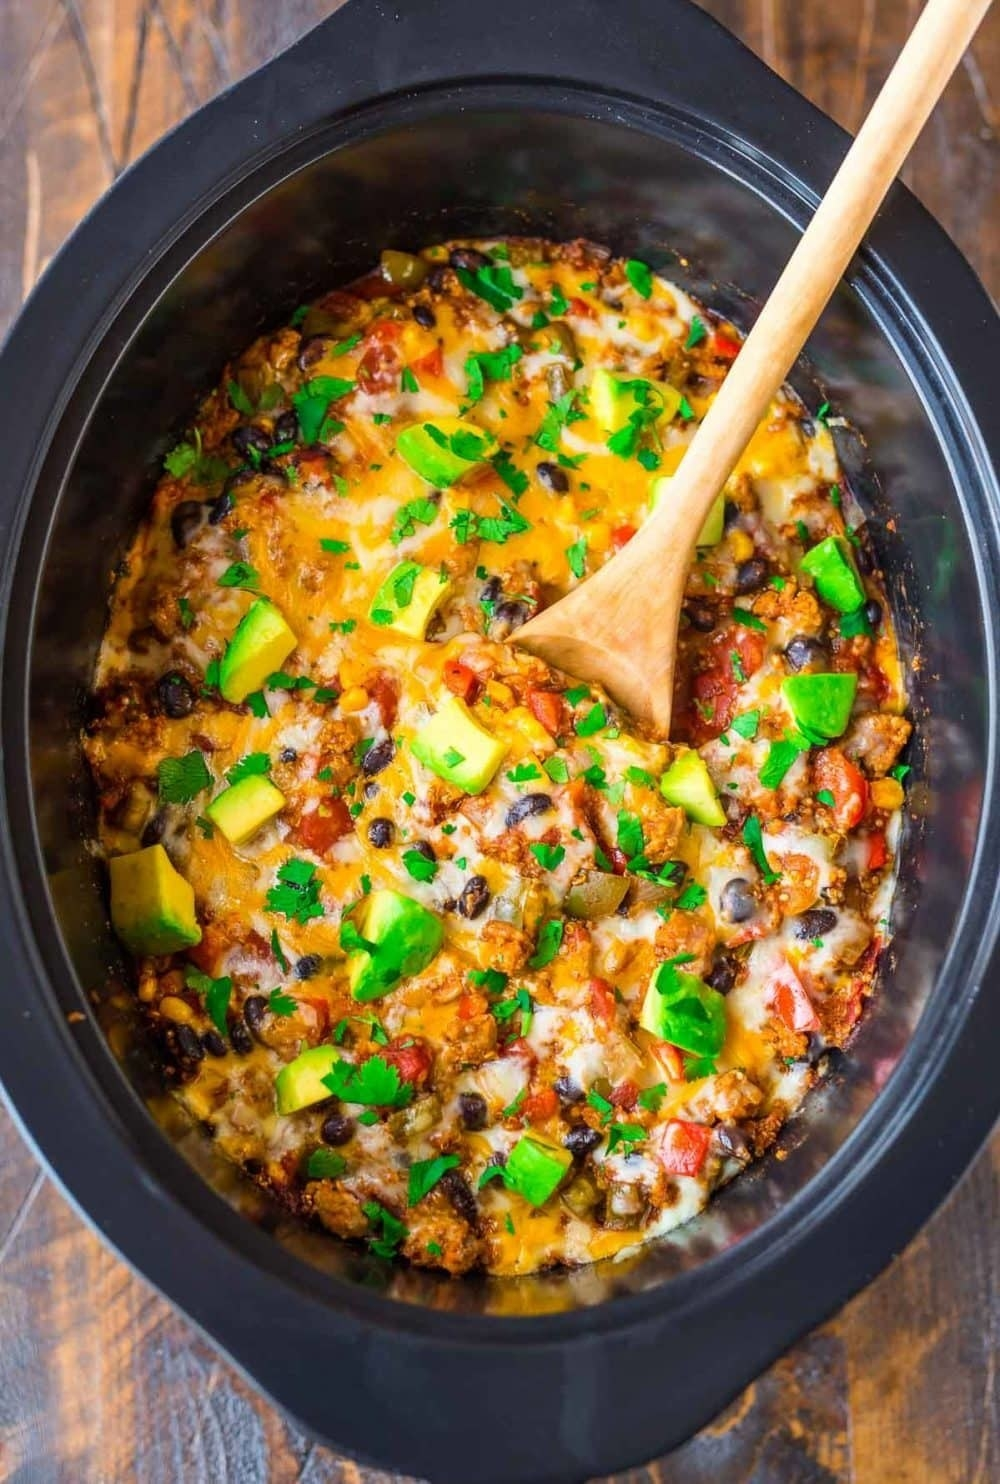 Crock Pot Mexican Casserole  -  This recipe uses ground turkey to keep it light, but you can totally use ground beef or chicken if that's more your style. Get the recipe .